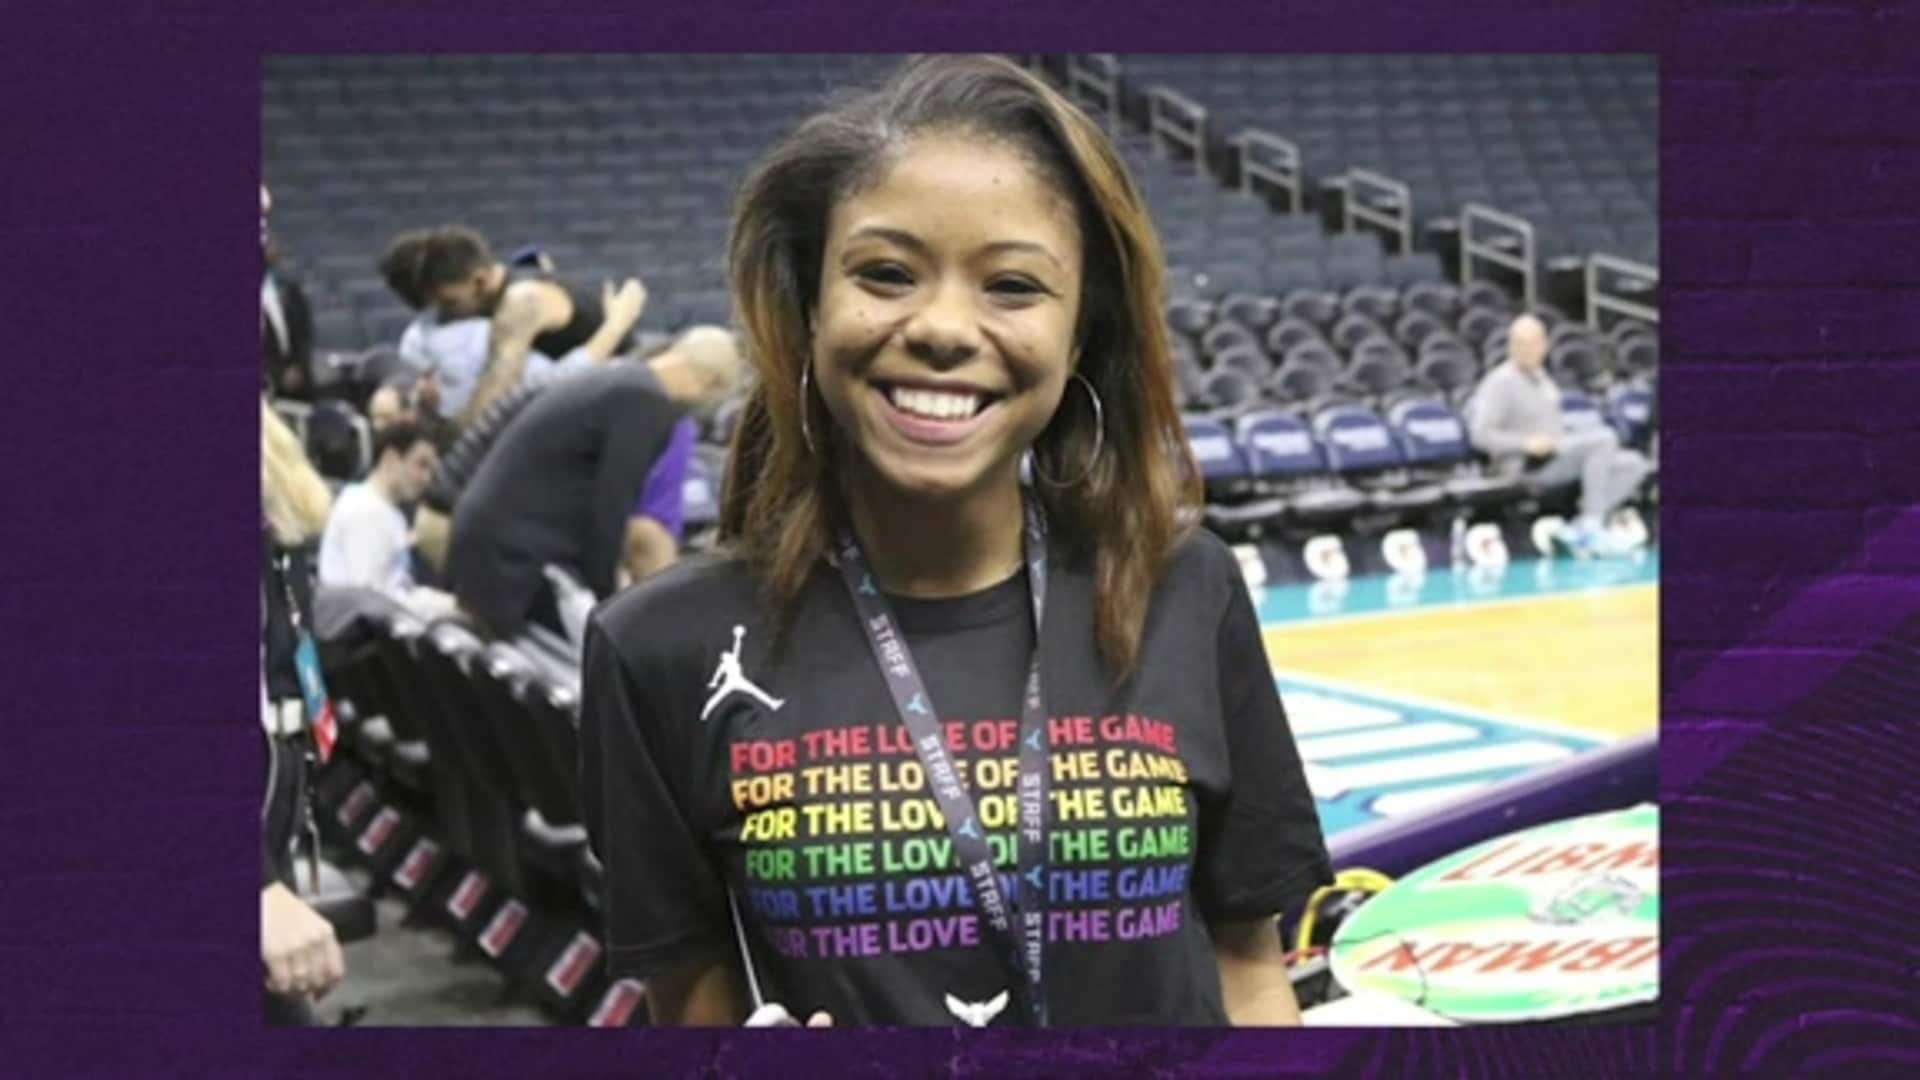 Mentor Mondays - Senior Coordinator of Corporate Social Responsibility Gabby Sims